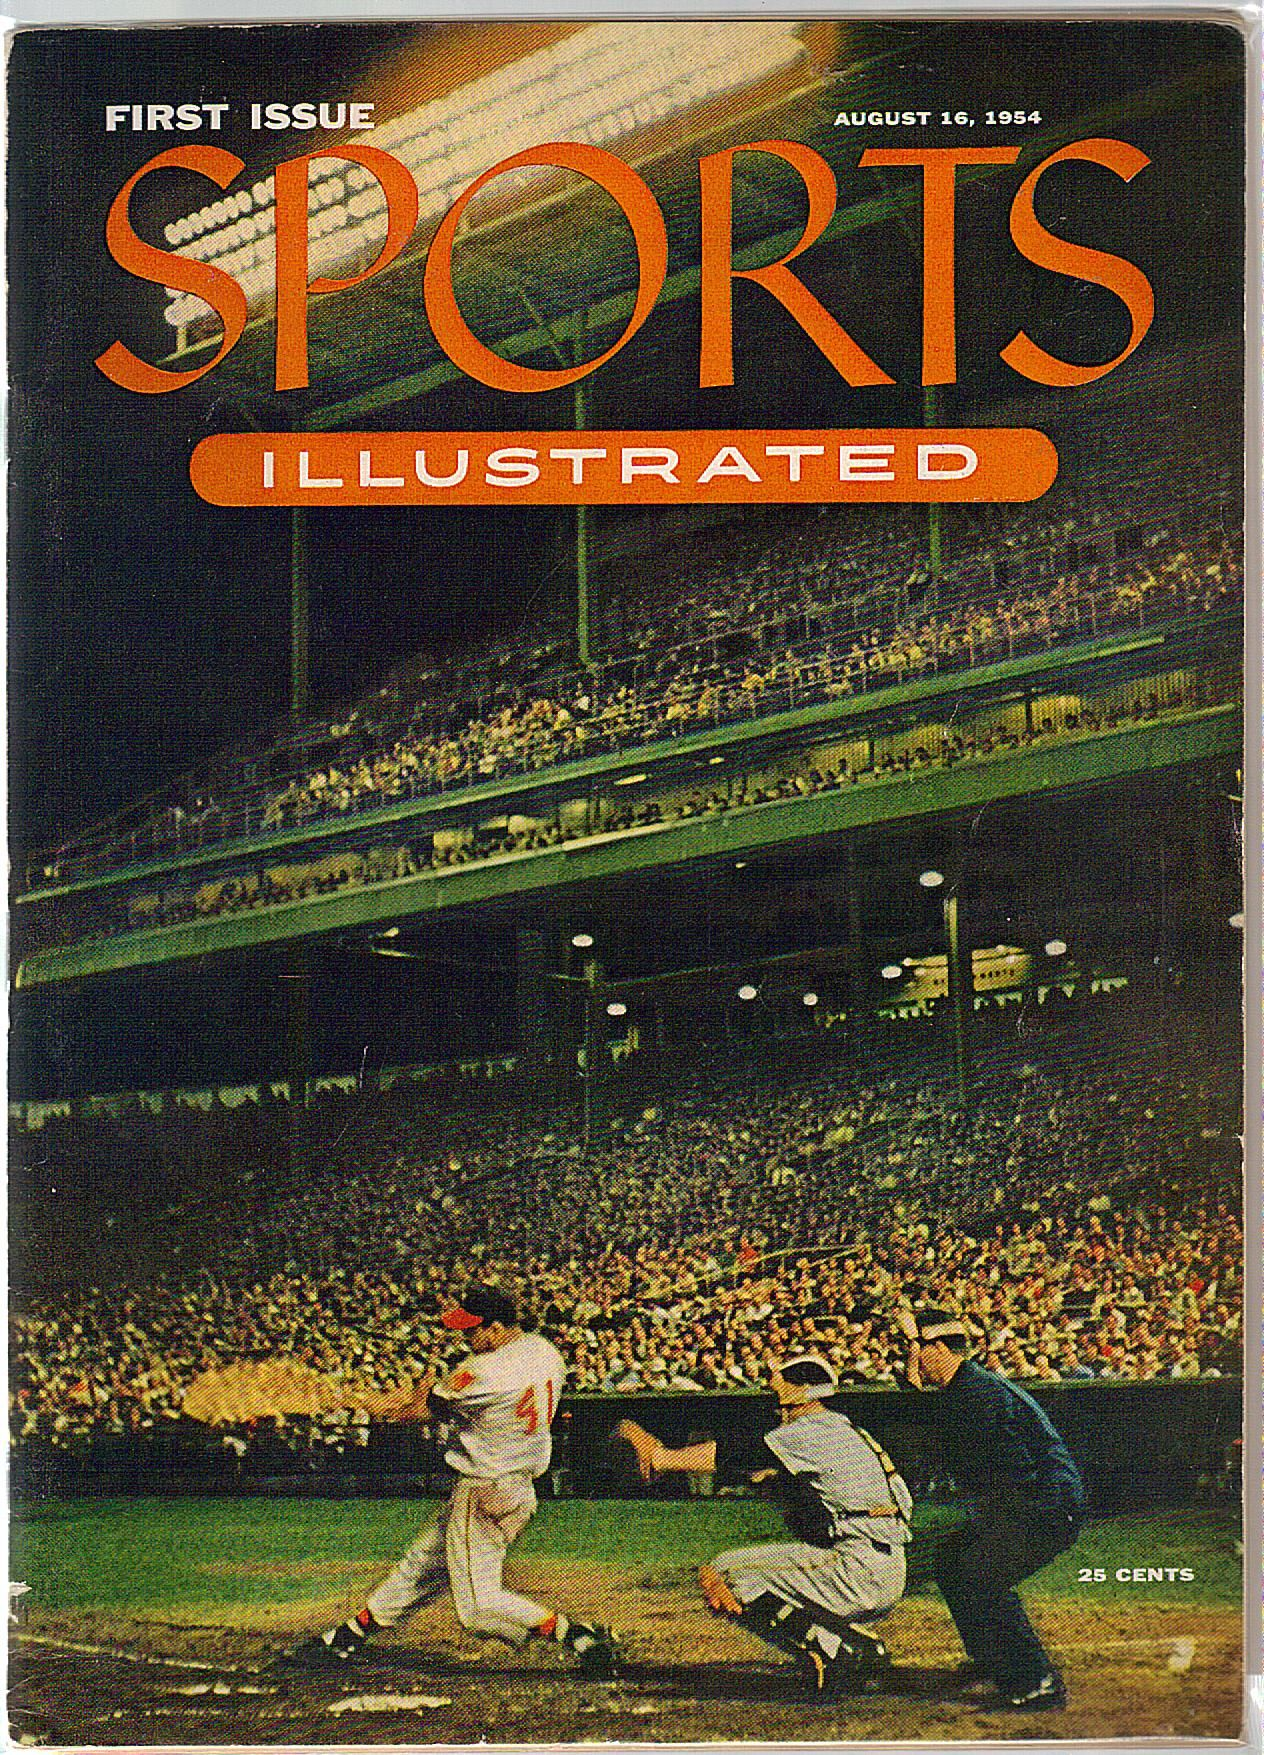 Eddie Mathews Sports Illustrated Debut